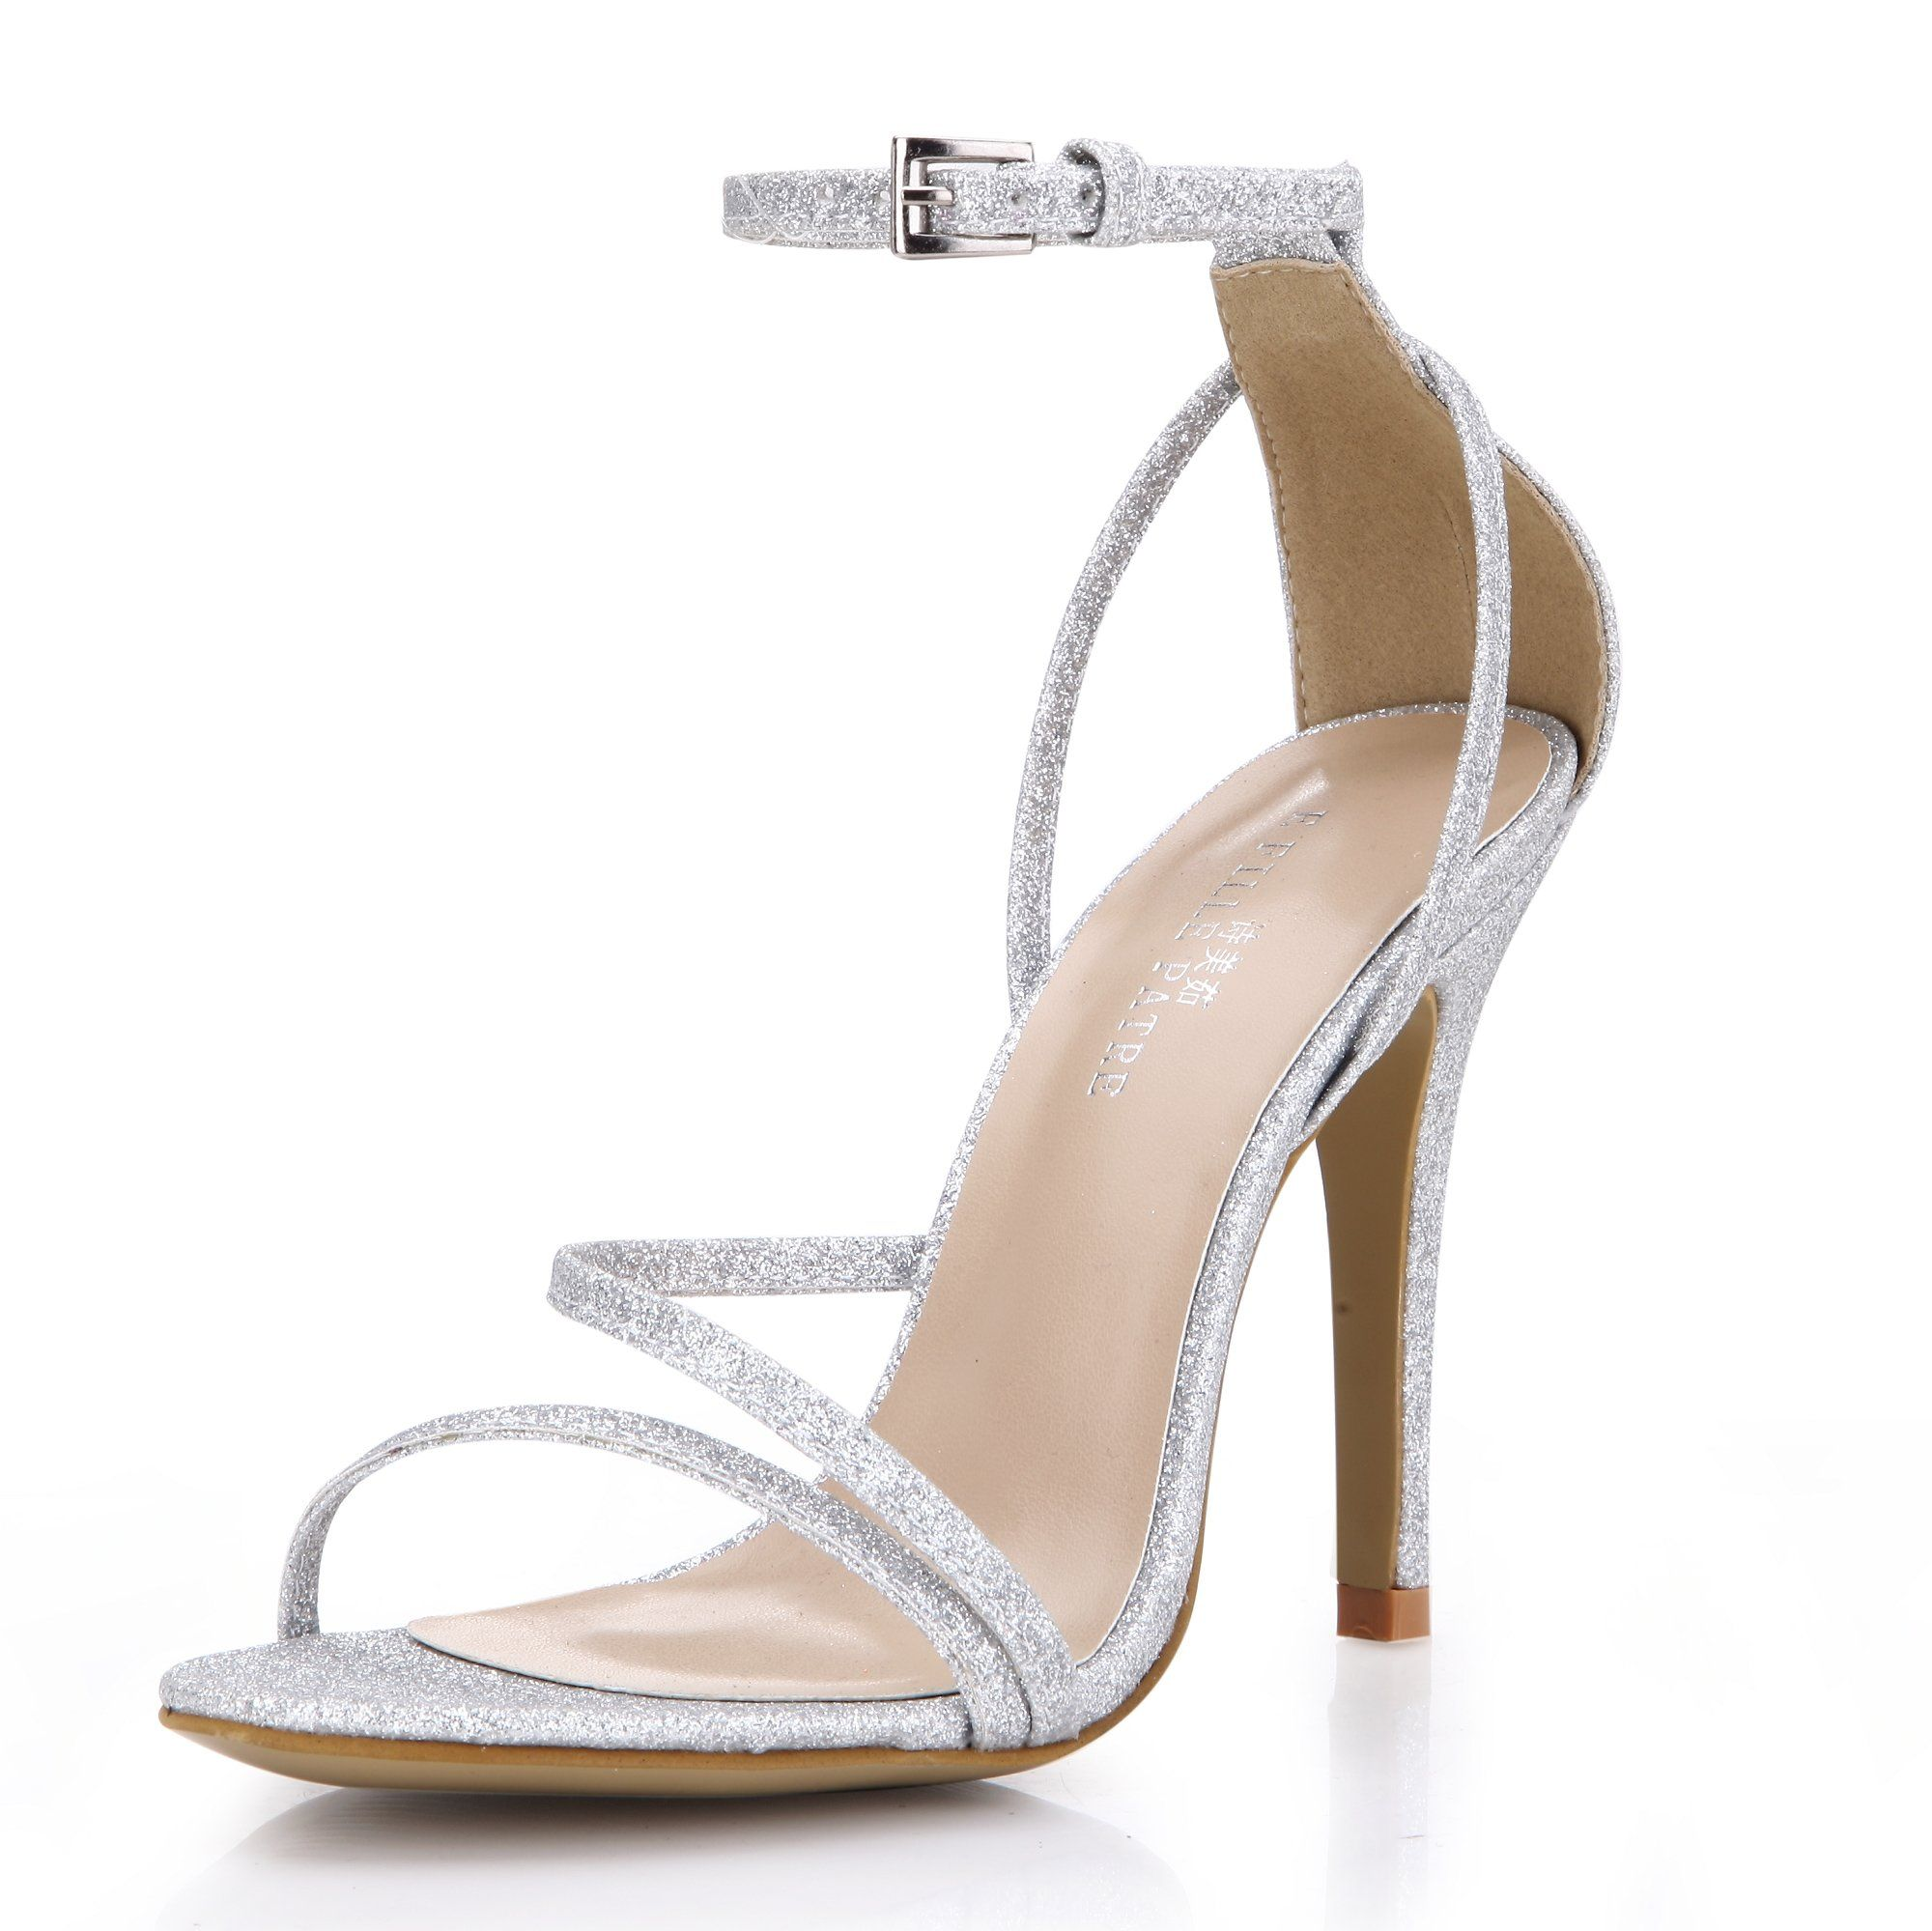 e92af8f76381 Dolphin Girl Women Extreme High Fashion Silver Simple Elegant Classic Open  Toe Sandal Dress Pump Heeled Thin Heels Strap Buckle Ankle Strap Strappy  Slightly ...